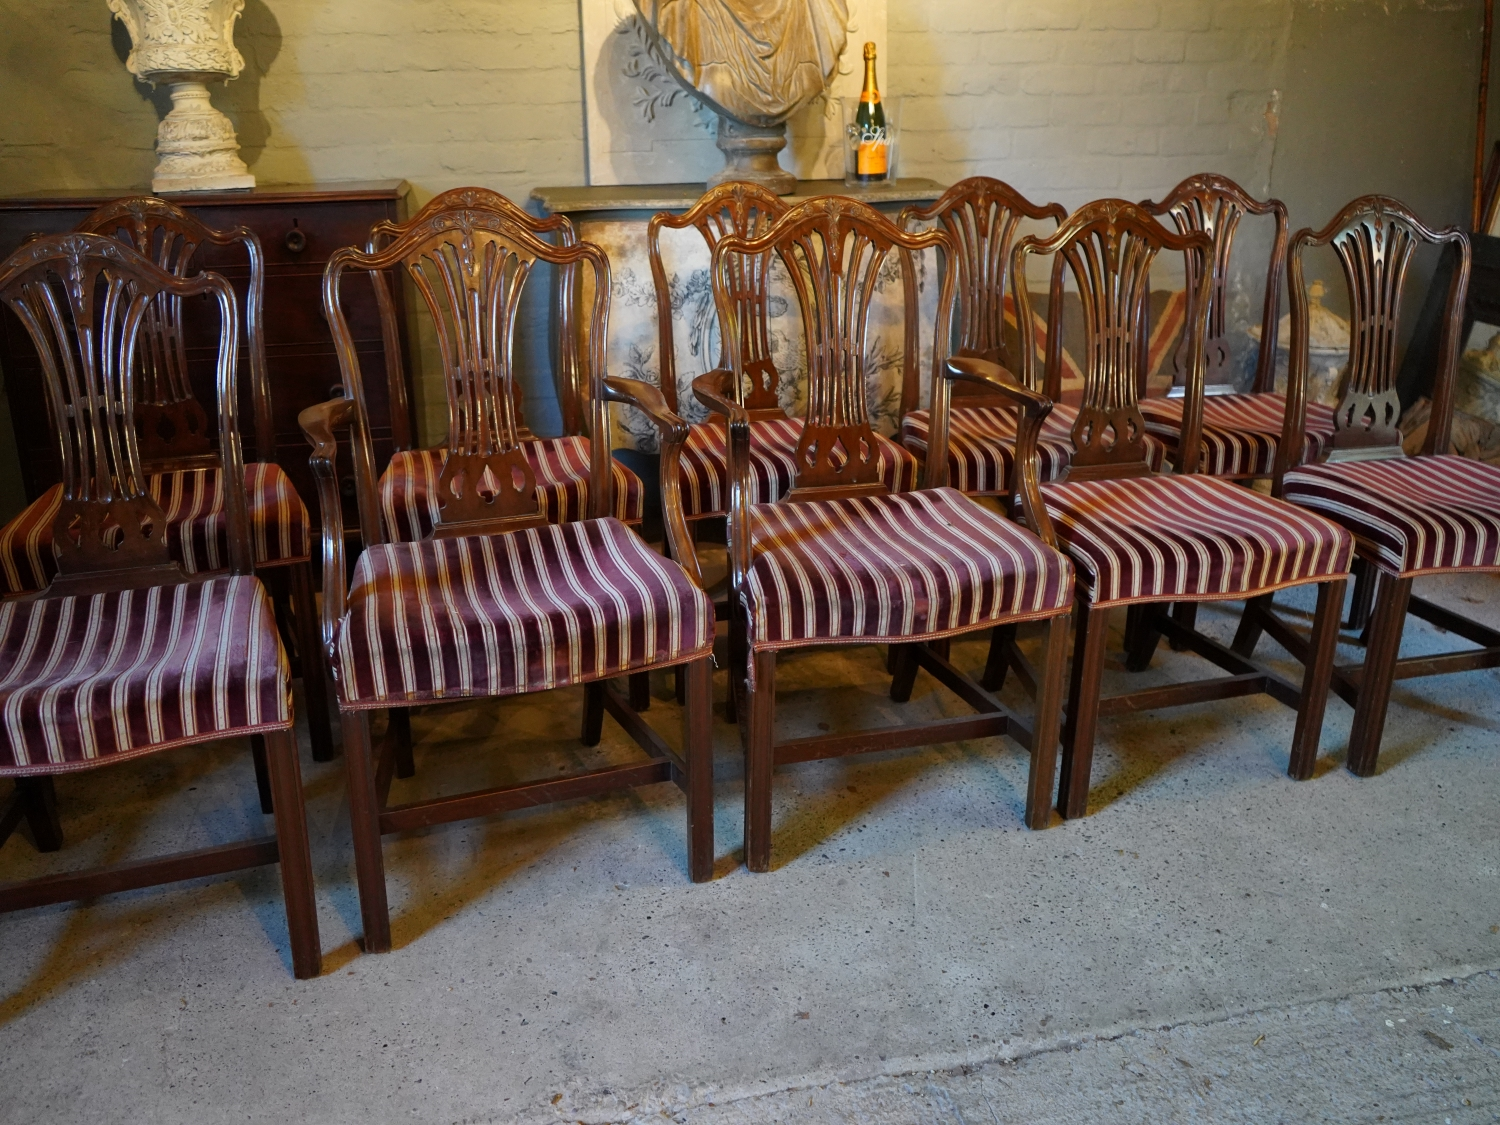 A Fine set of 10 Mahogany Dining Chairs comprising 8 single and 2 matching armchairs. Georgian in style to a design by George Hepplewhite.